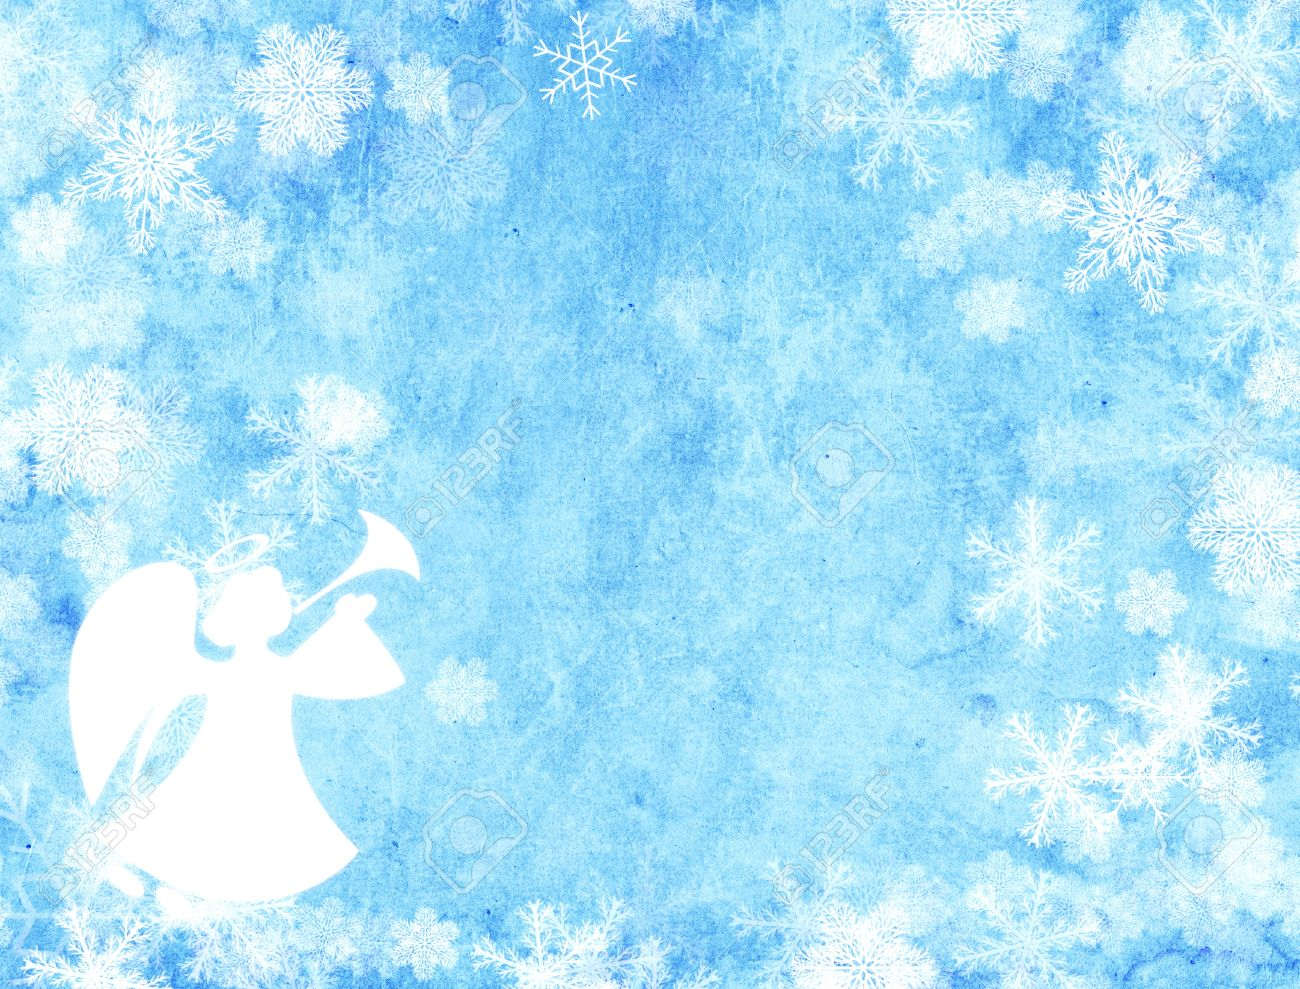 Angels Christmas Background.Christmas Grunge Background With Angel